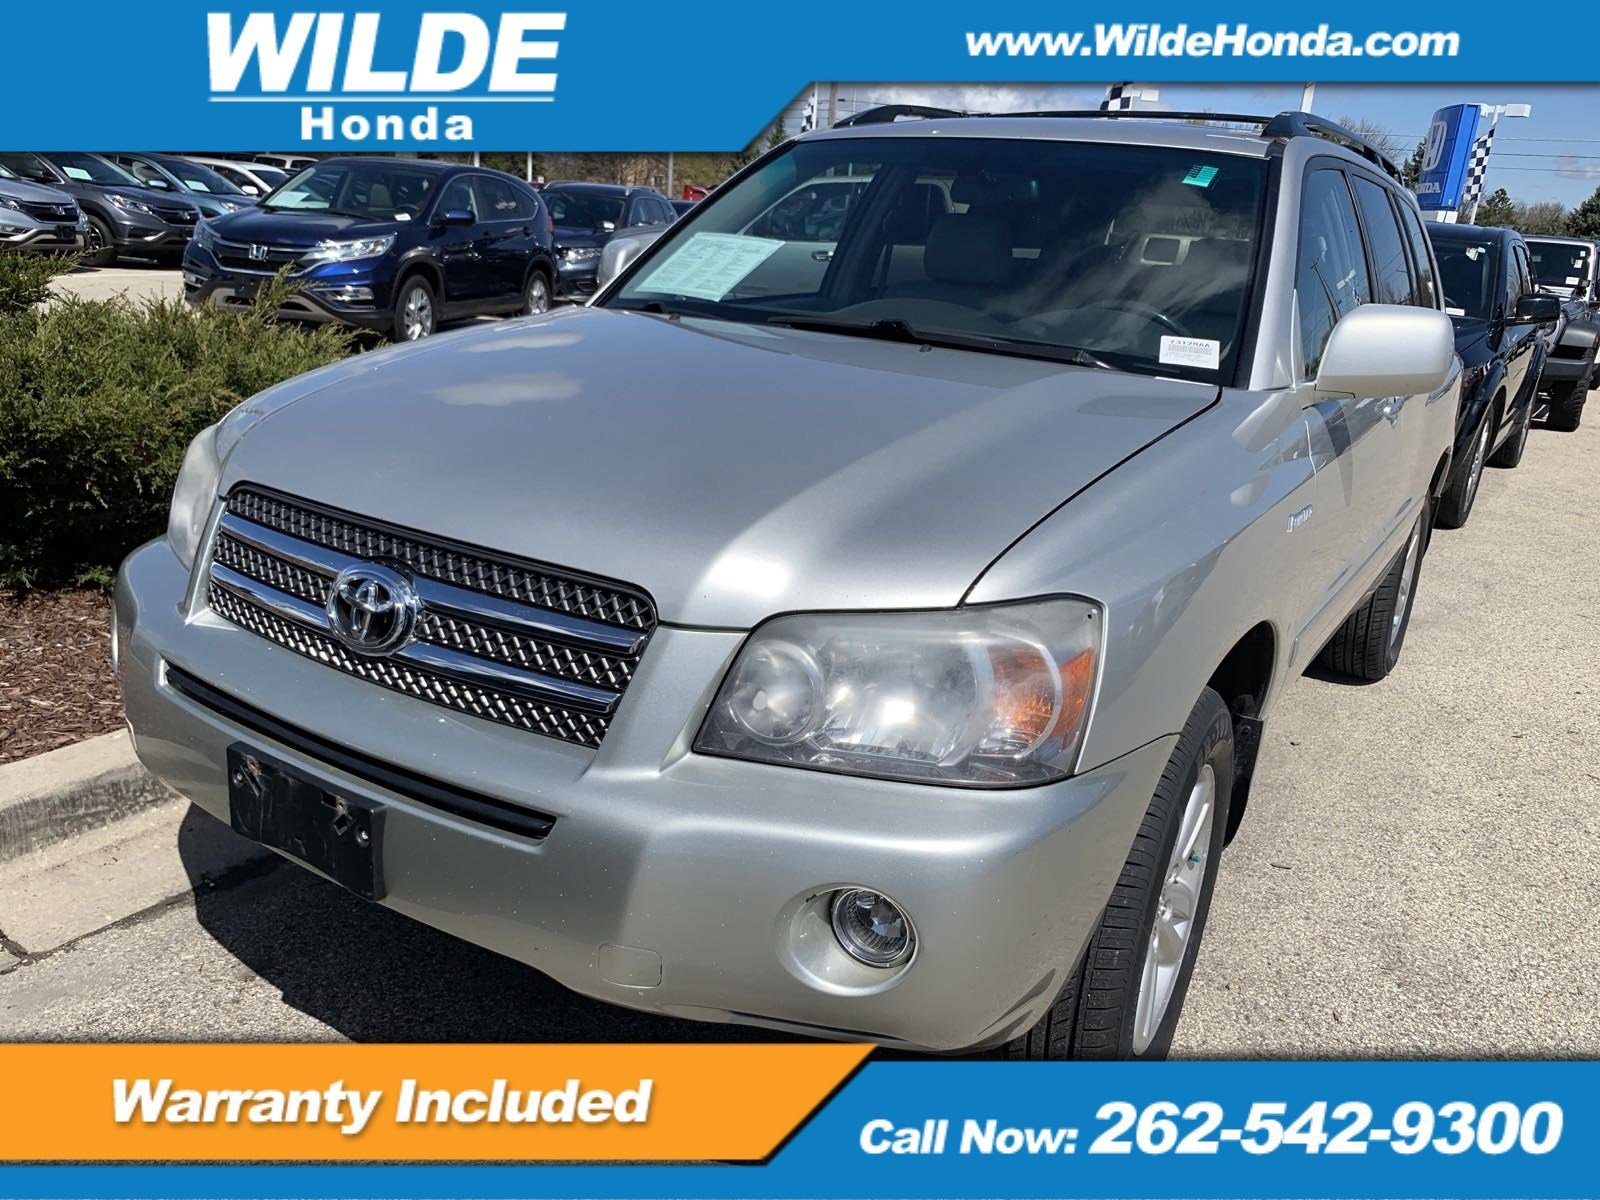 Pre-Owned 2006 Toyota Highlander Hybrid LTD